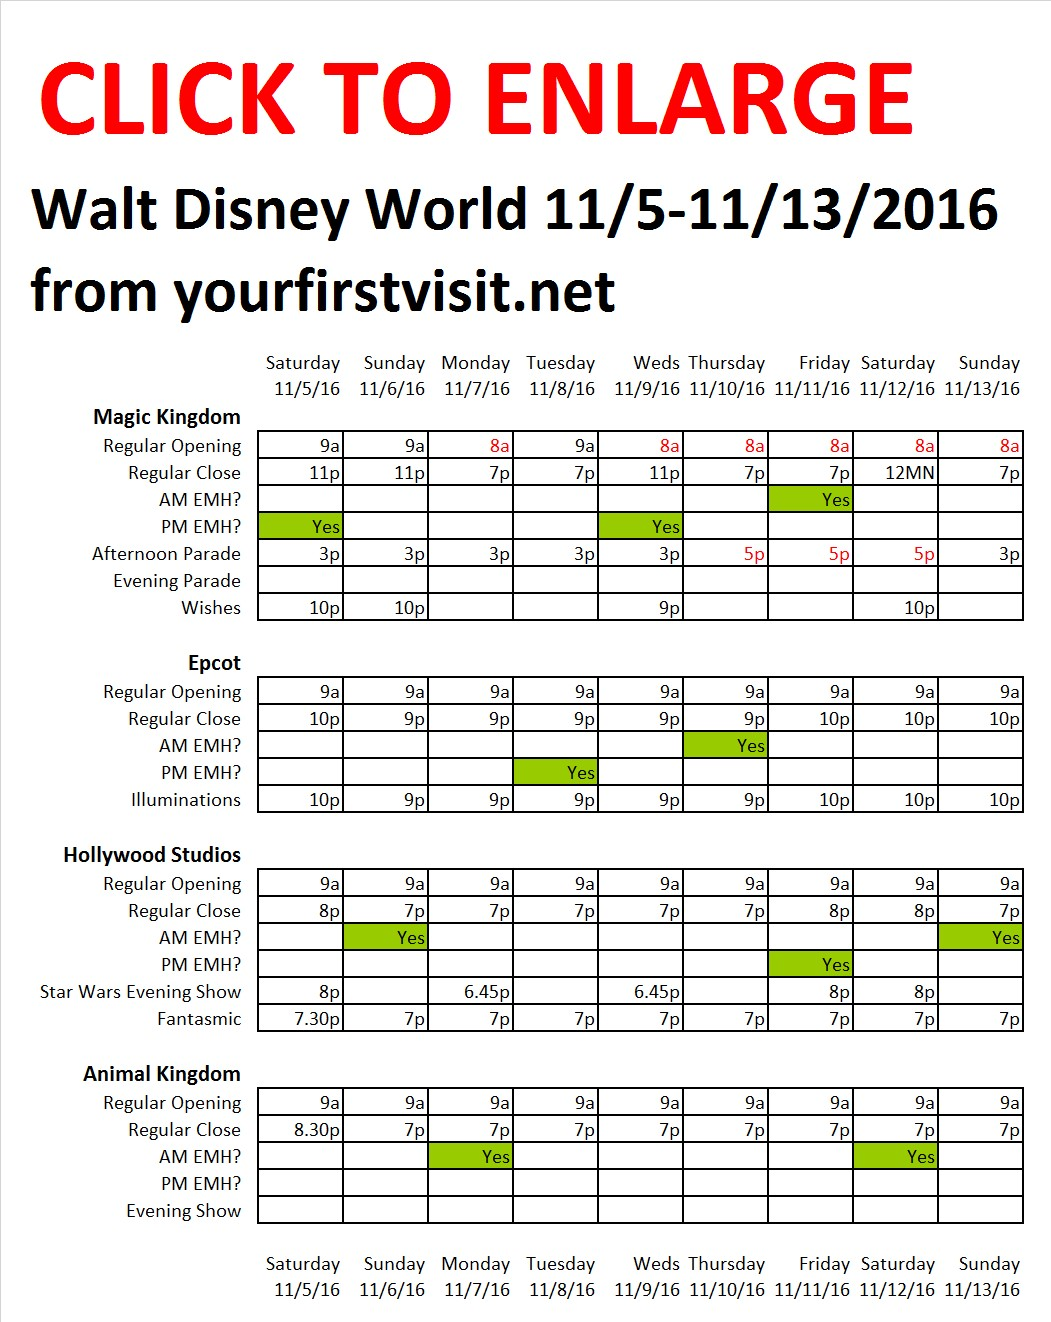 disney-world-11-5-to-11-13-2016-from-yourfirstvisit-net